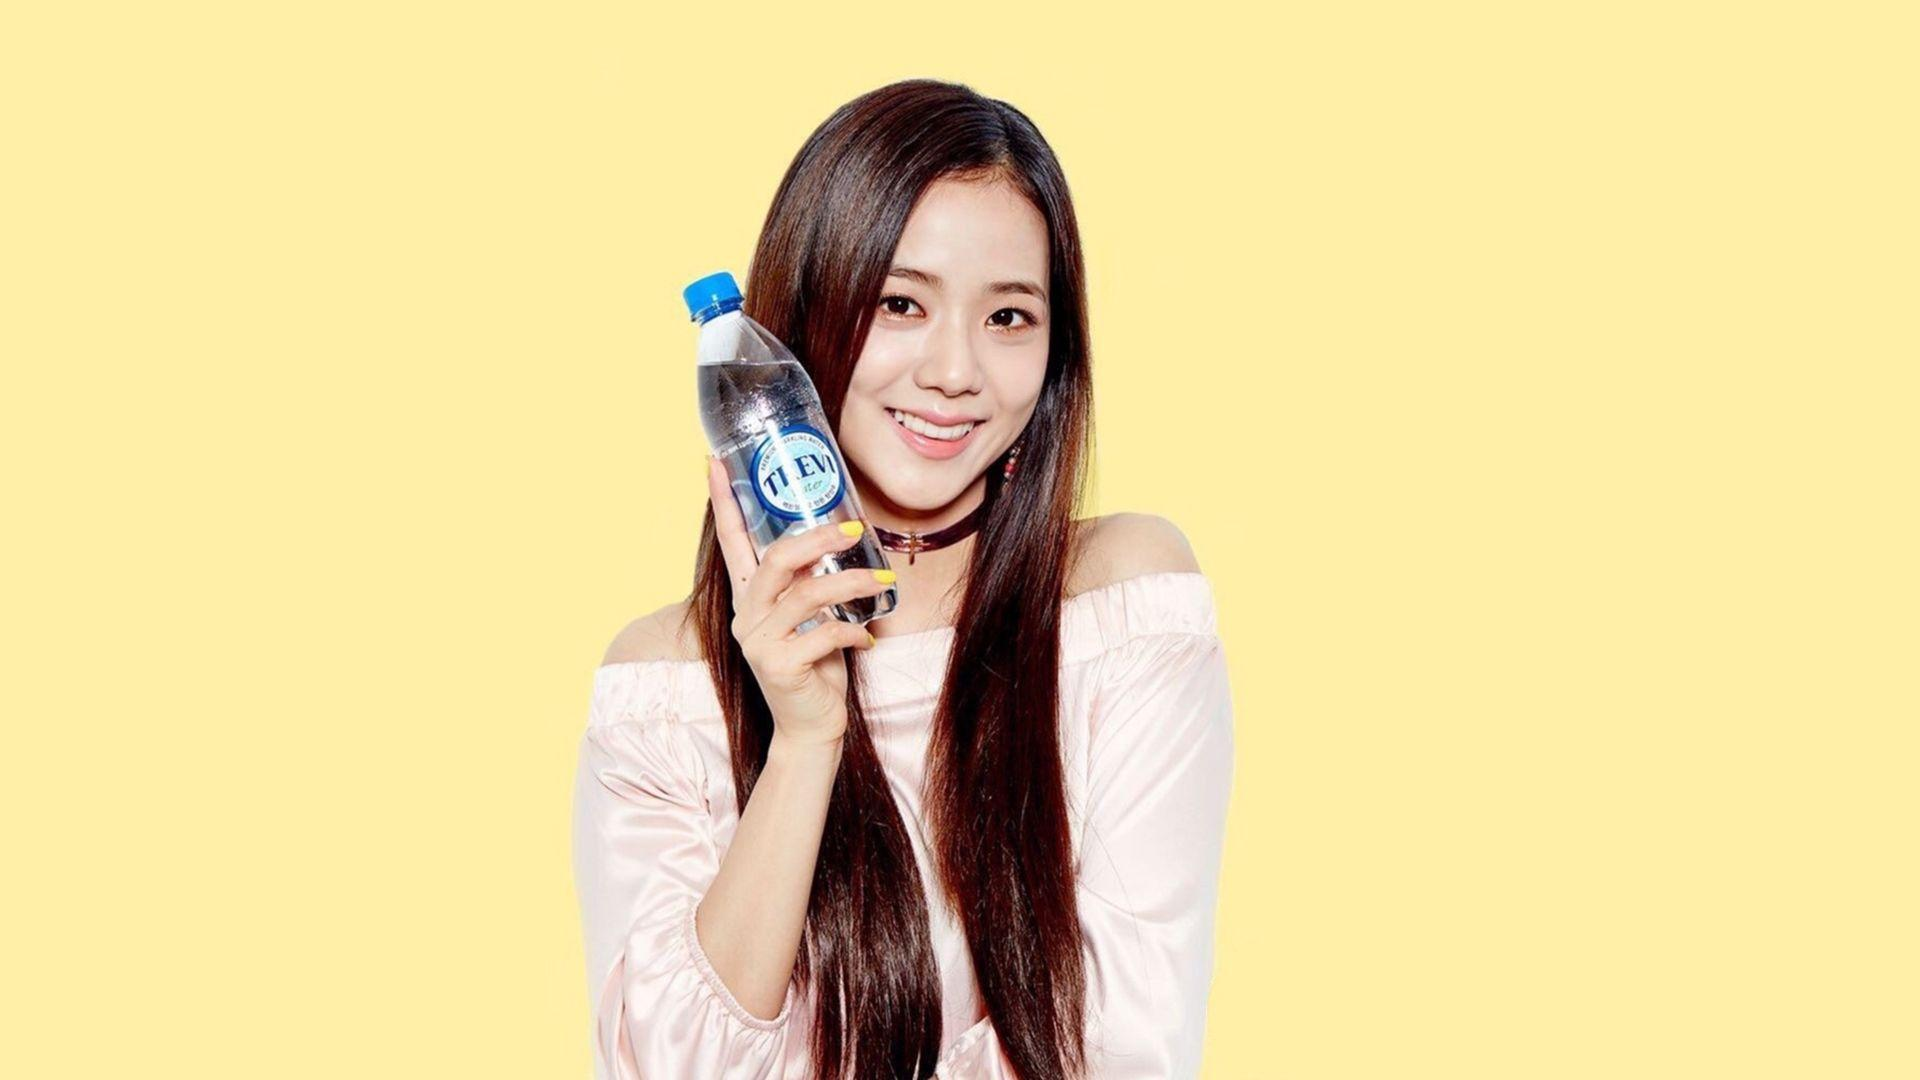 Blackpink Jisoo Wallpaper: BLACKPINK Jisoo Wallpapers